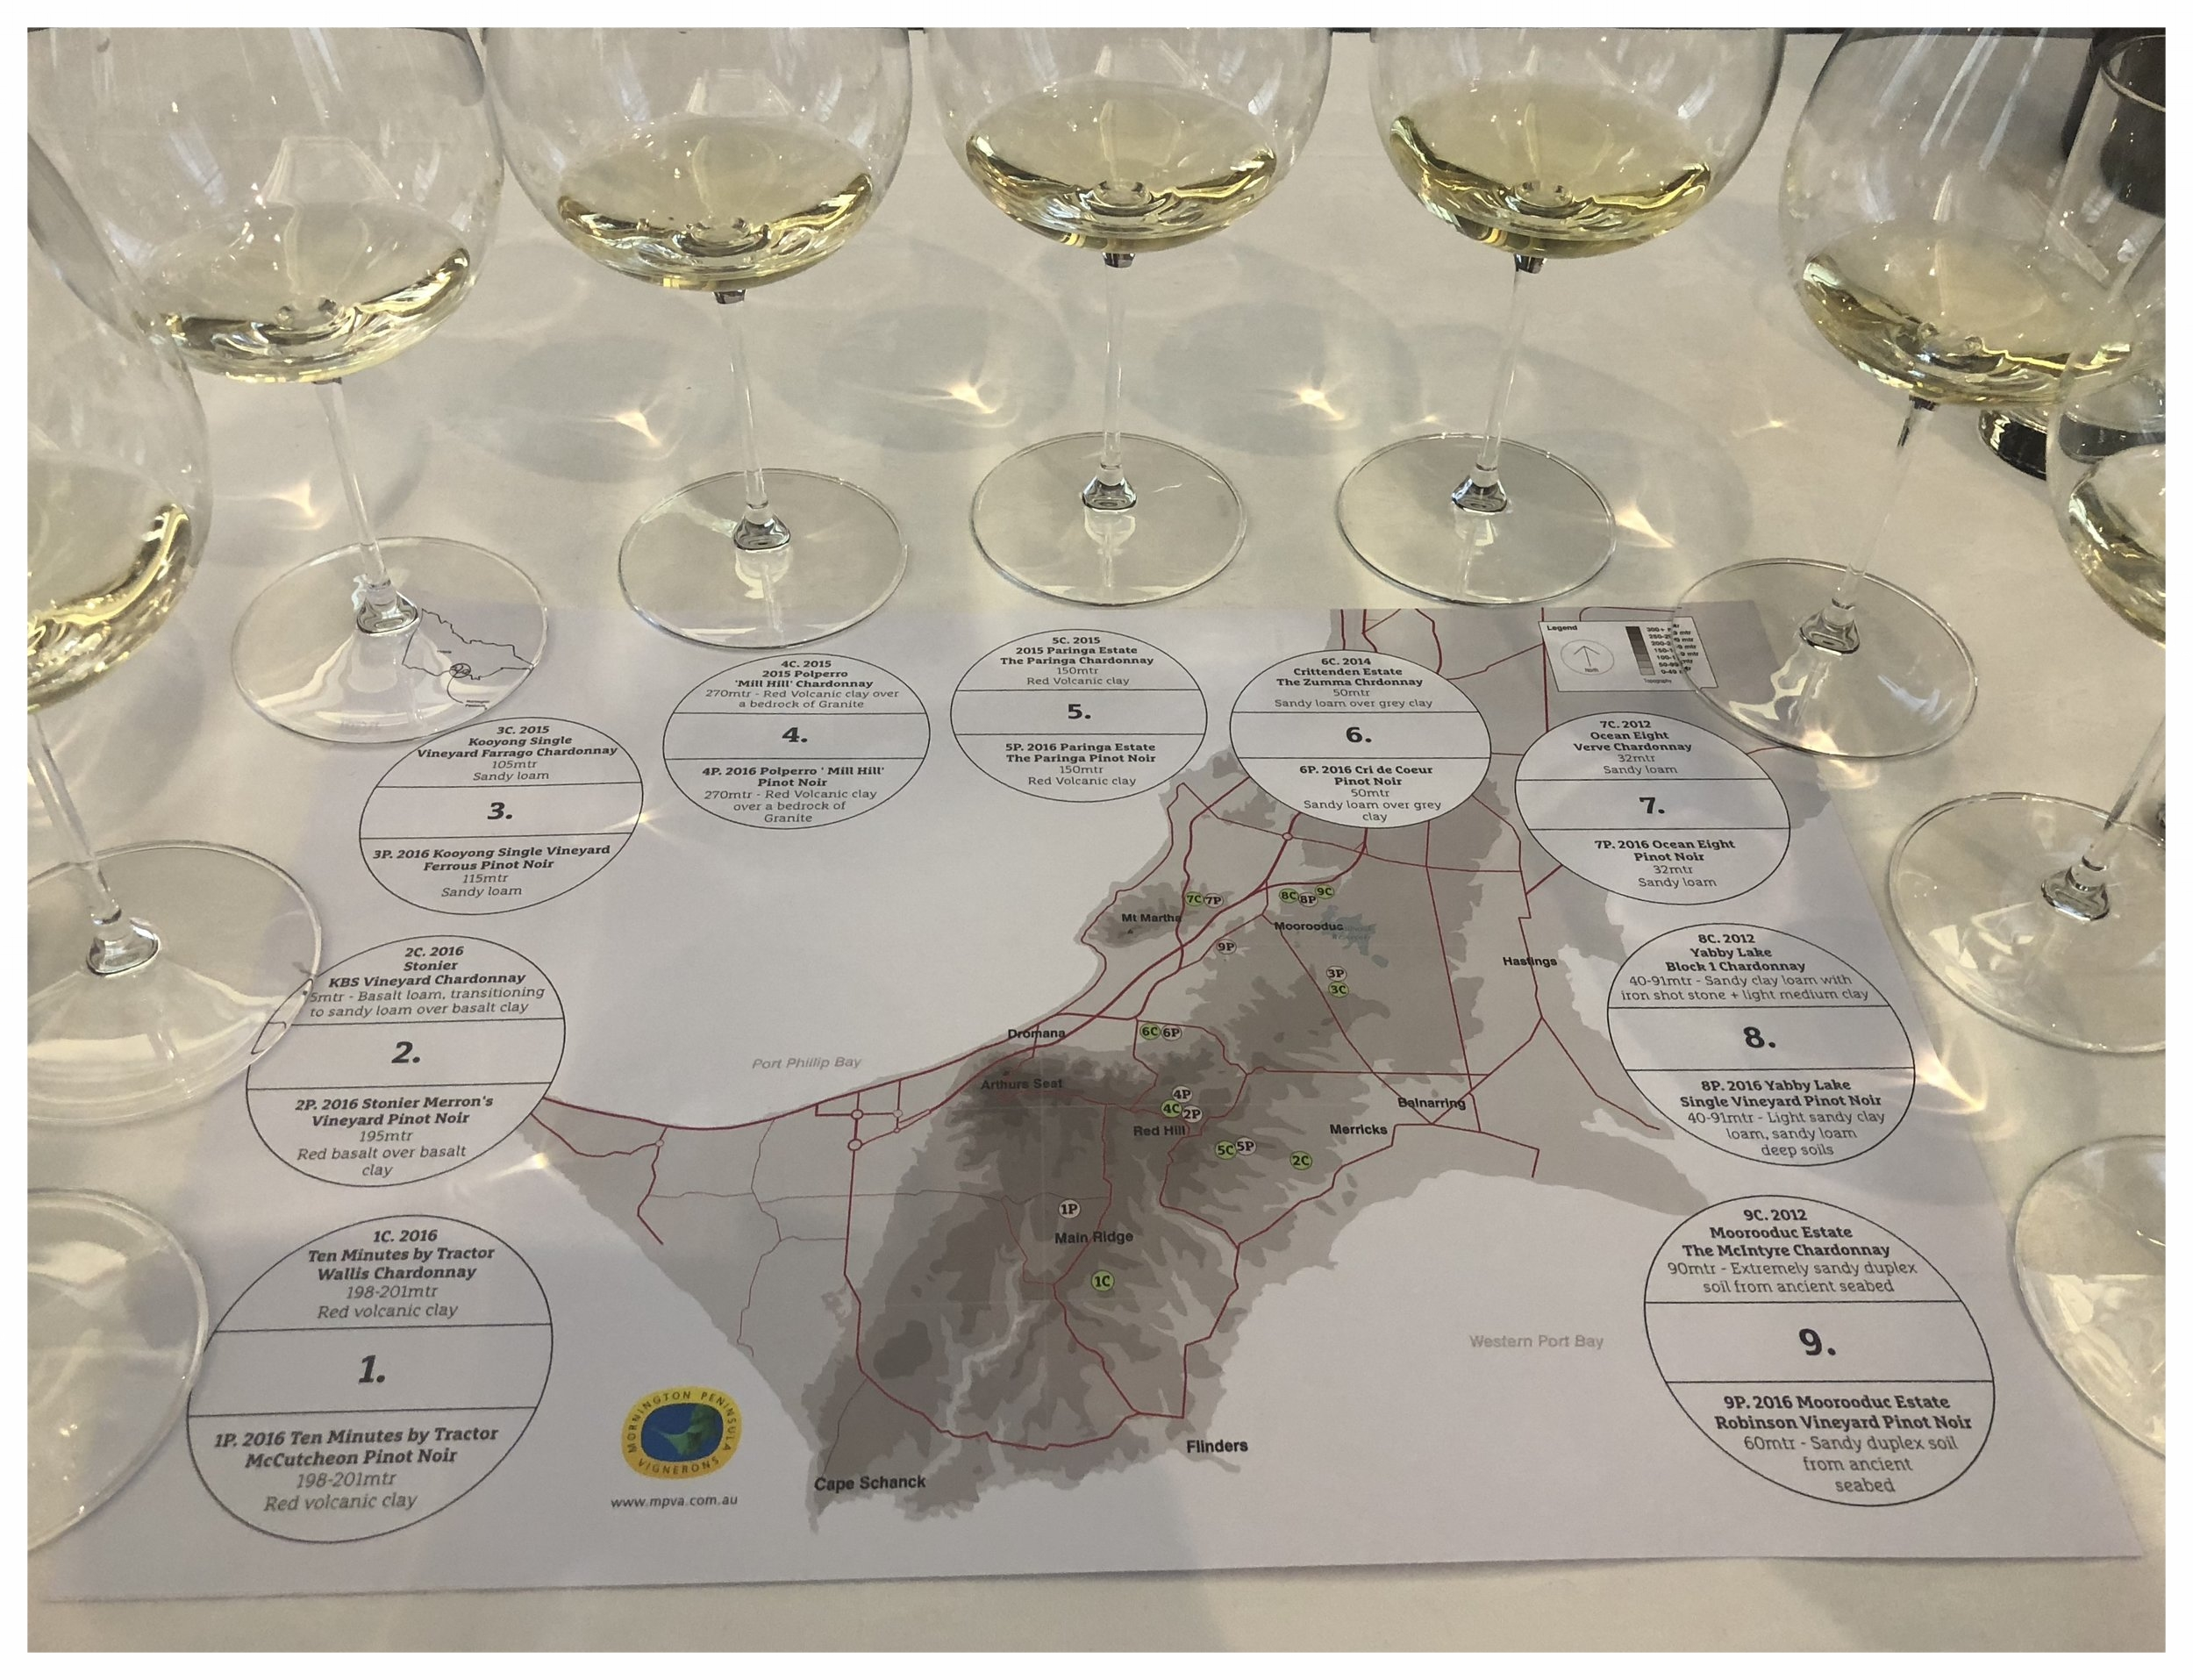 Wine Tasting with the map of Mornington Peninsula (MP) supplied by the MP Vignerons Association  Image: Sumi Sarma